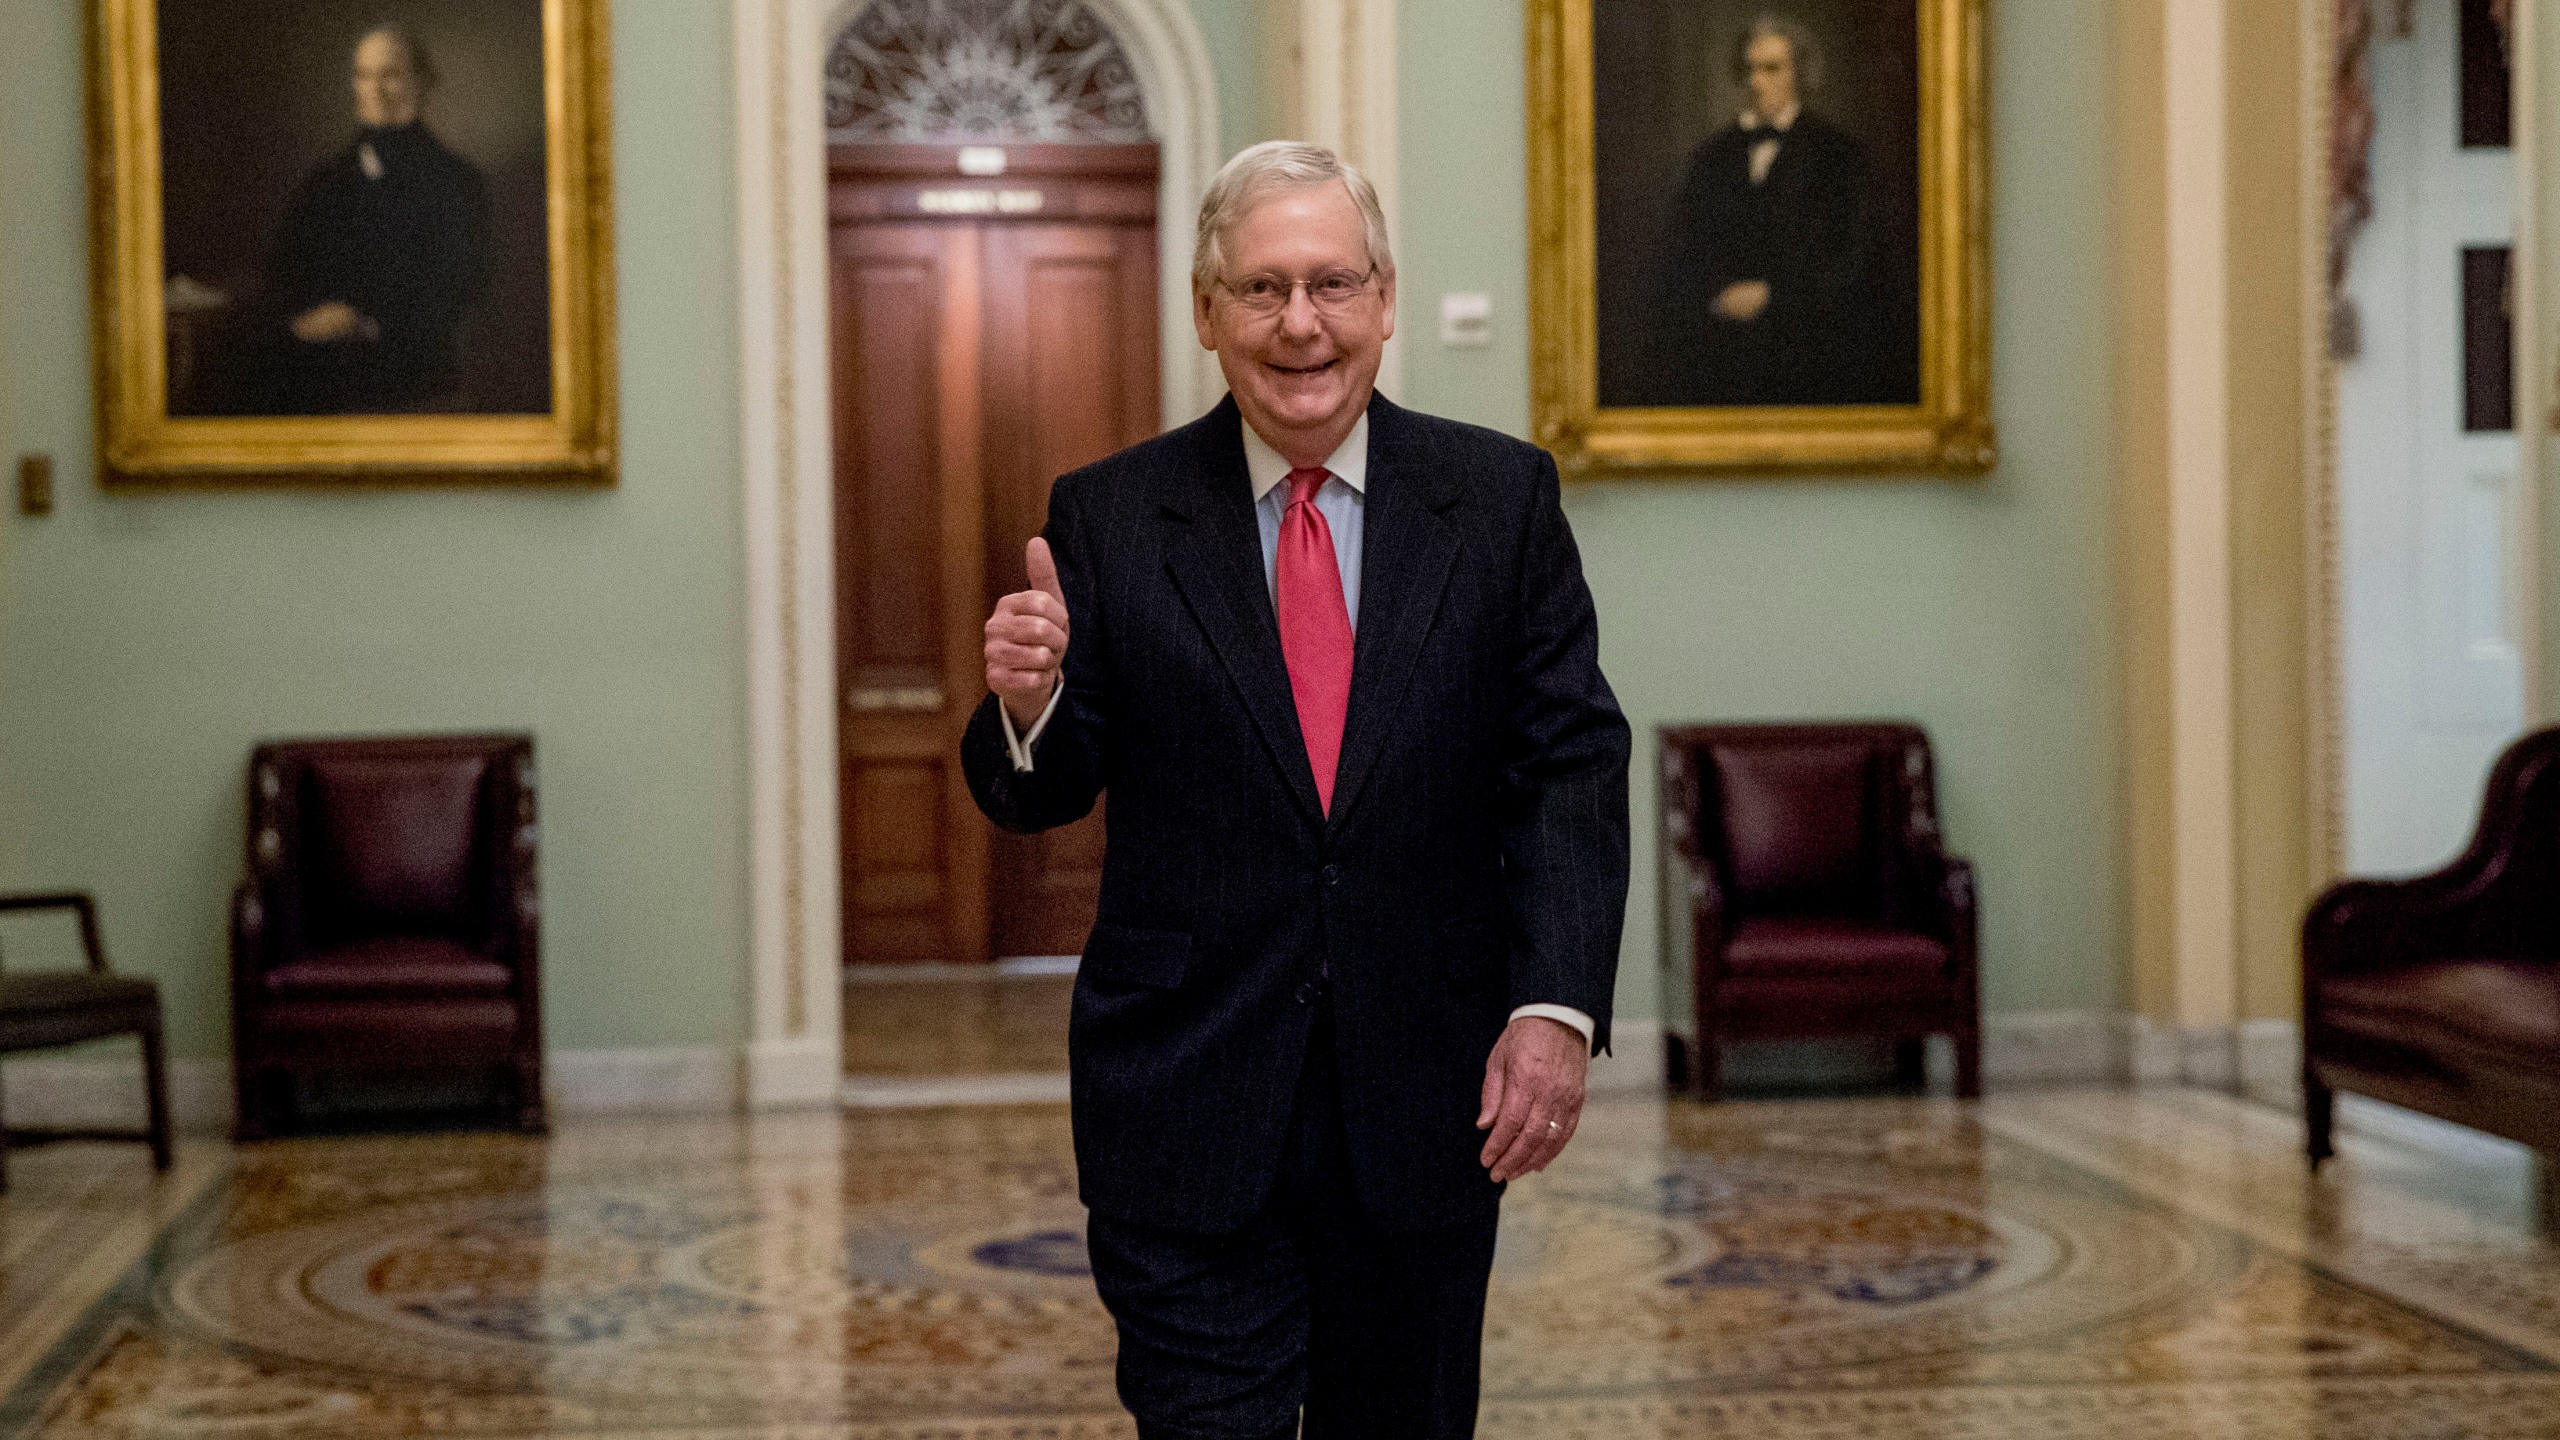 Senate Majority Leader Mitch McConnell of Ky. gives a thumbs up as he arrives on Capitol Hill, Wednesday, March 25, 2020, in Washington. (AP Photo/Andrew Harnik)